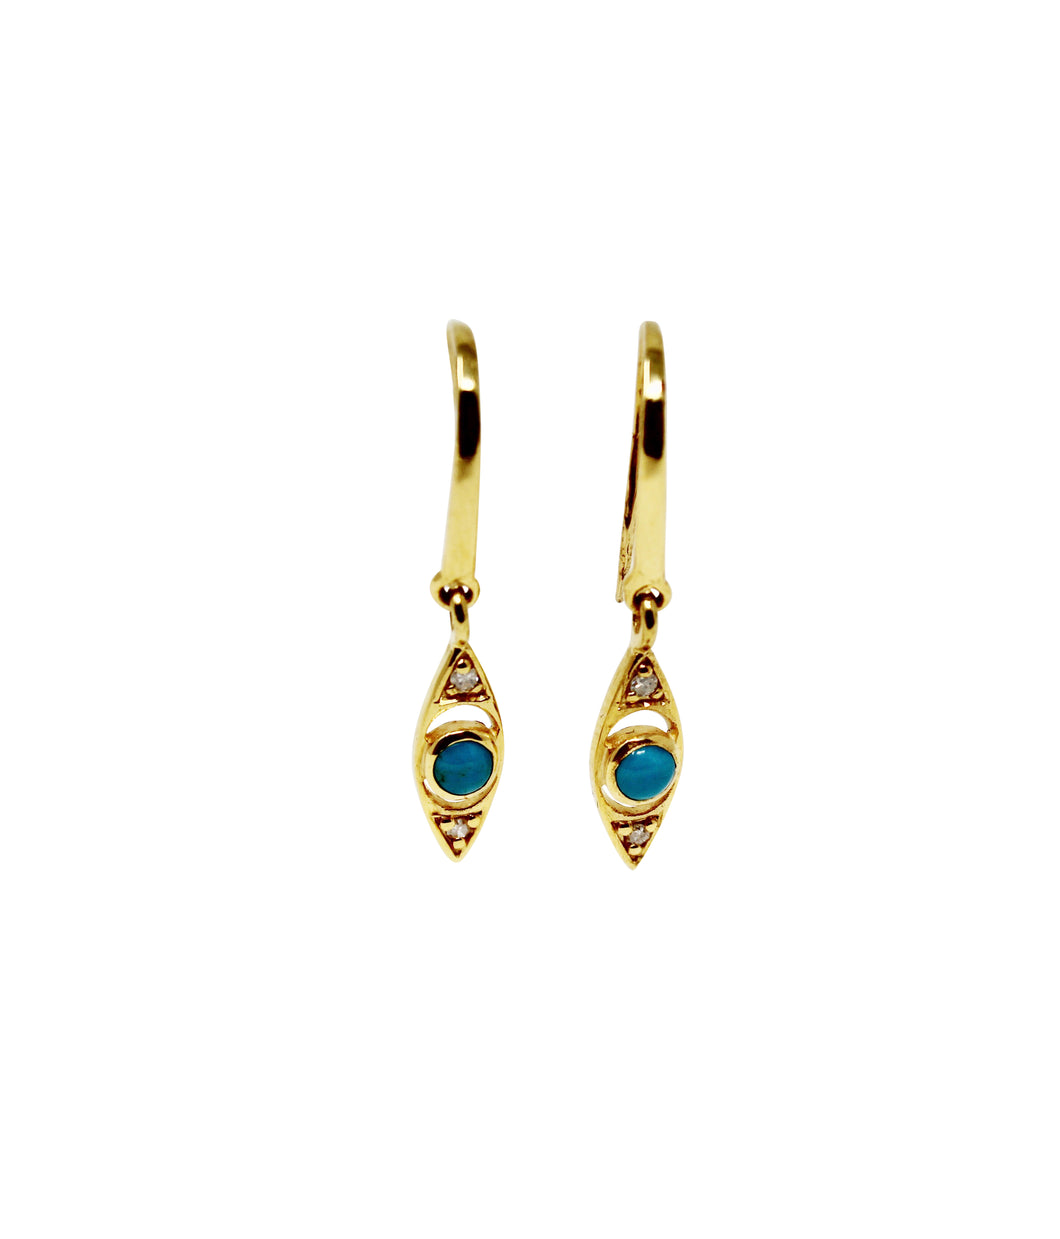 Anné Gangel Turqouise & Monnstone Protective Eye Earrings